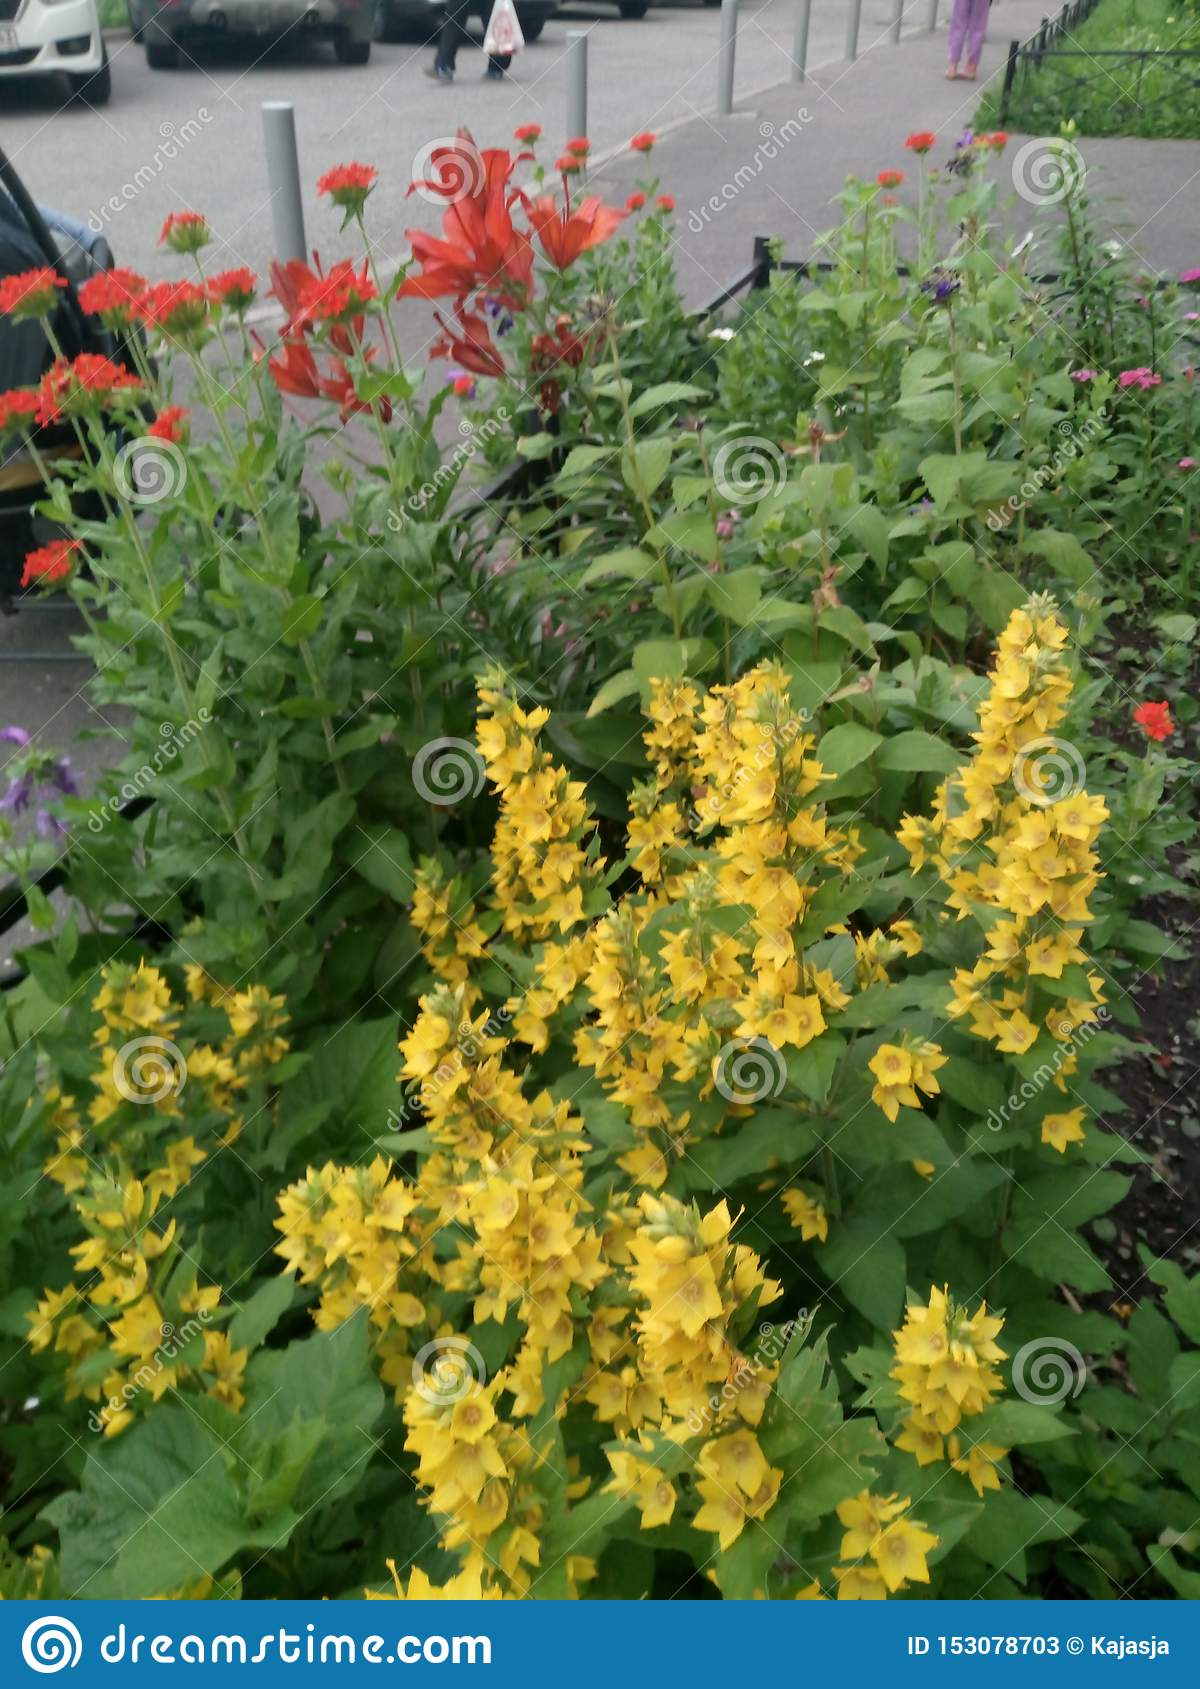 Flowerbed with Yellow red and other flowers